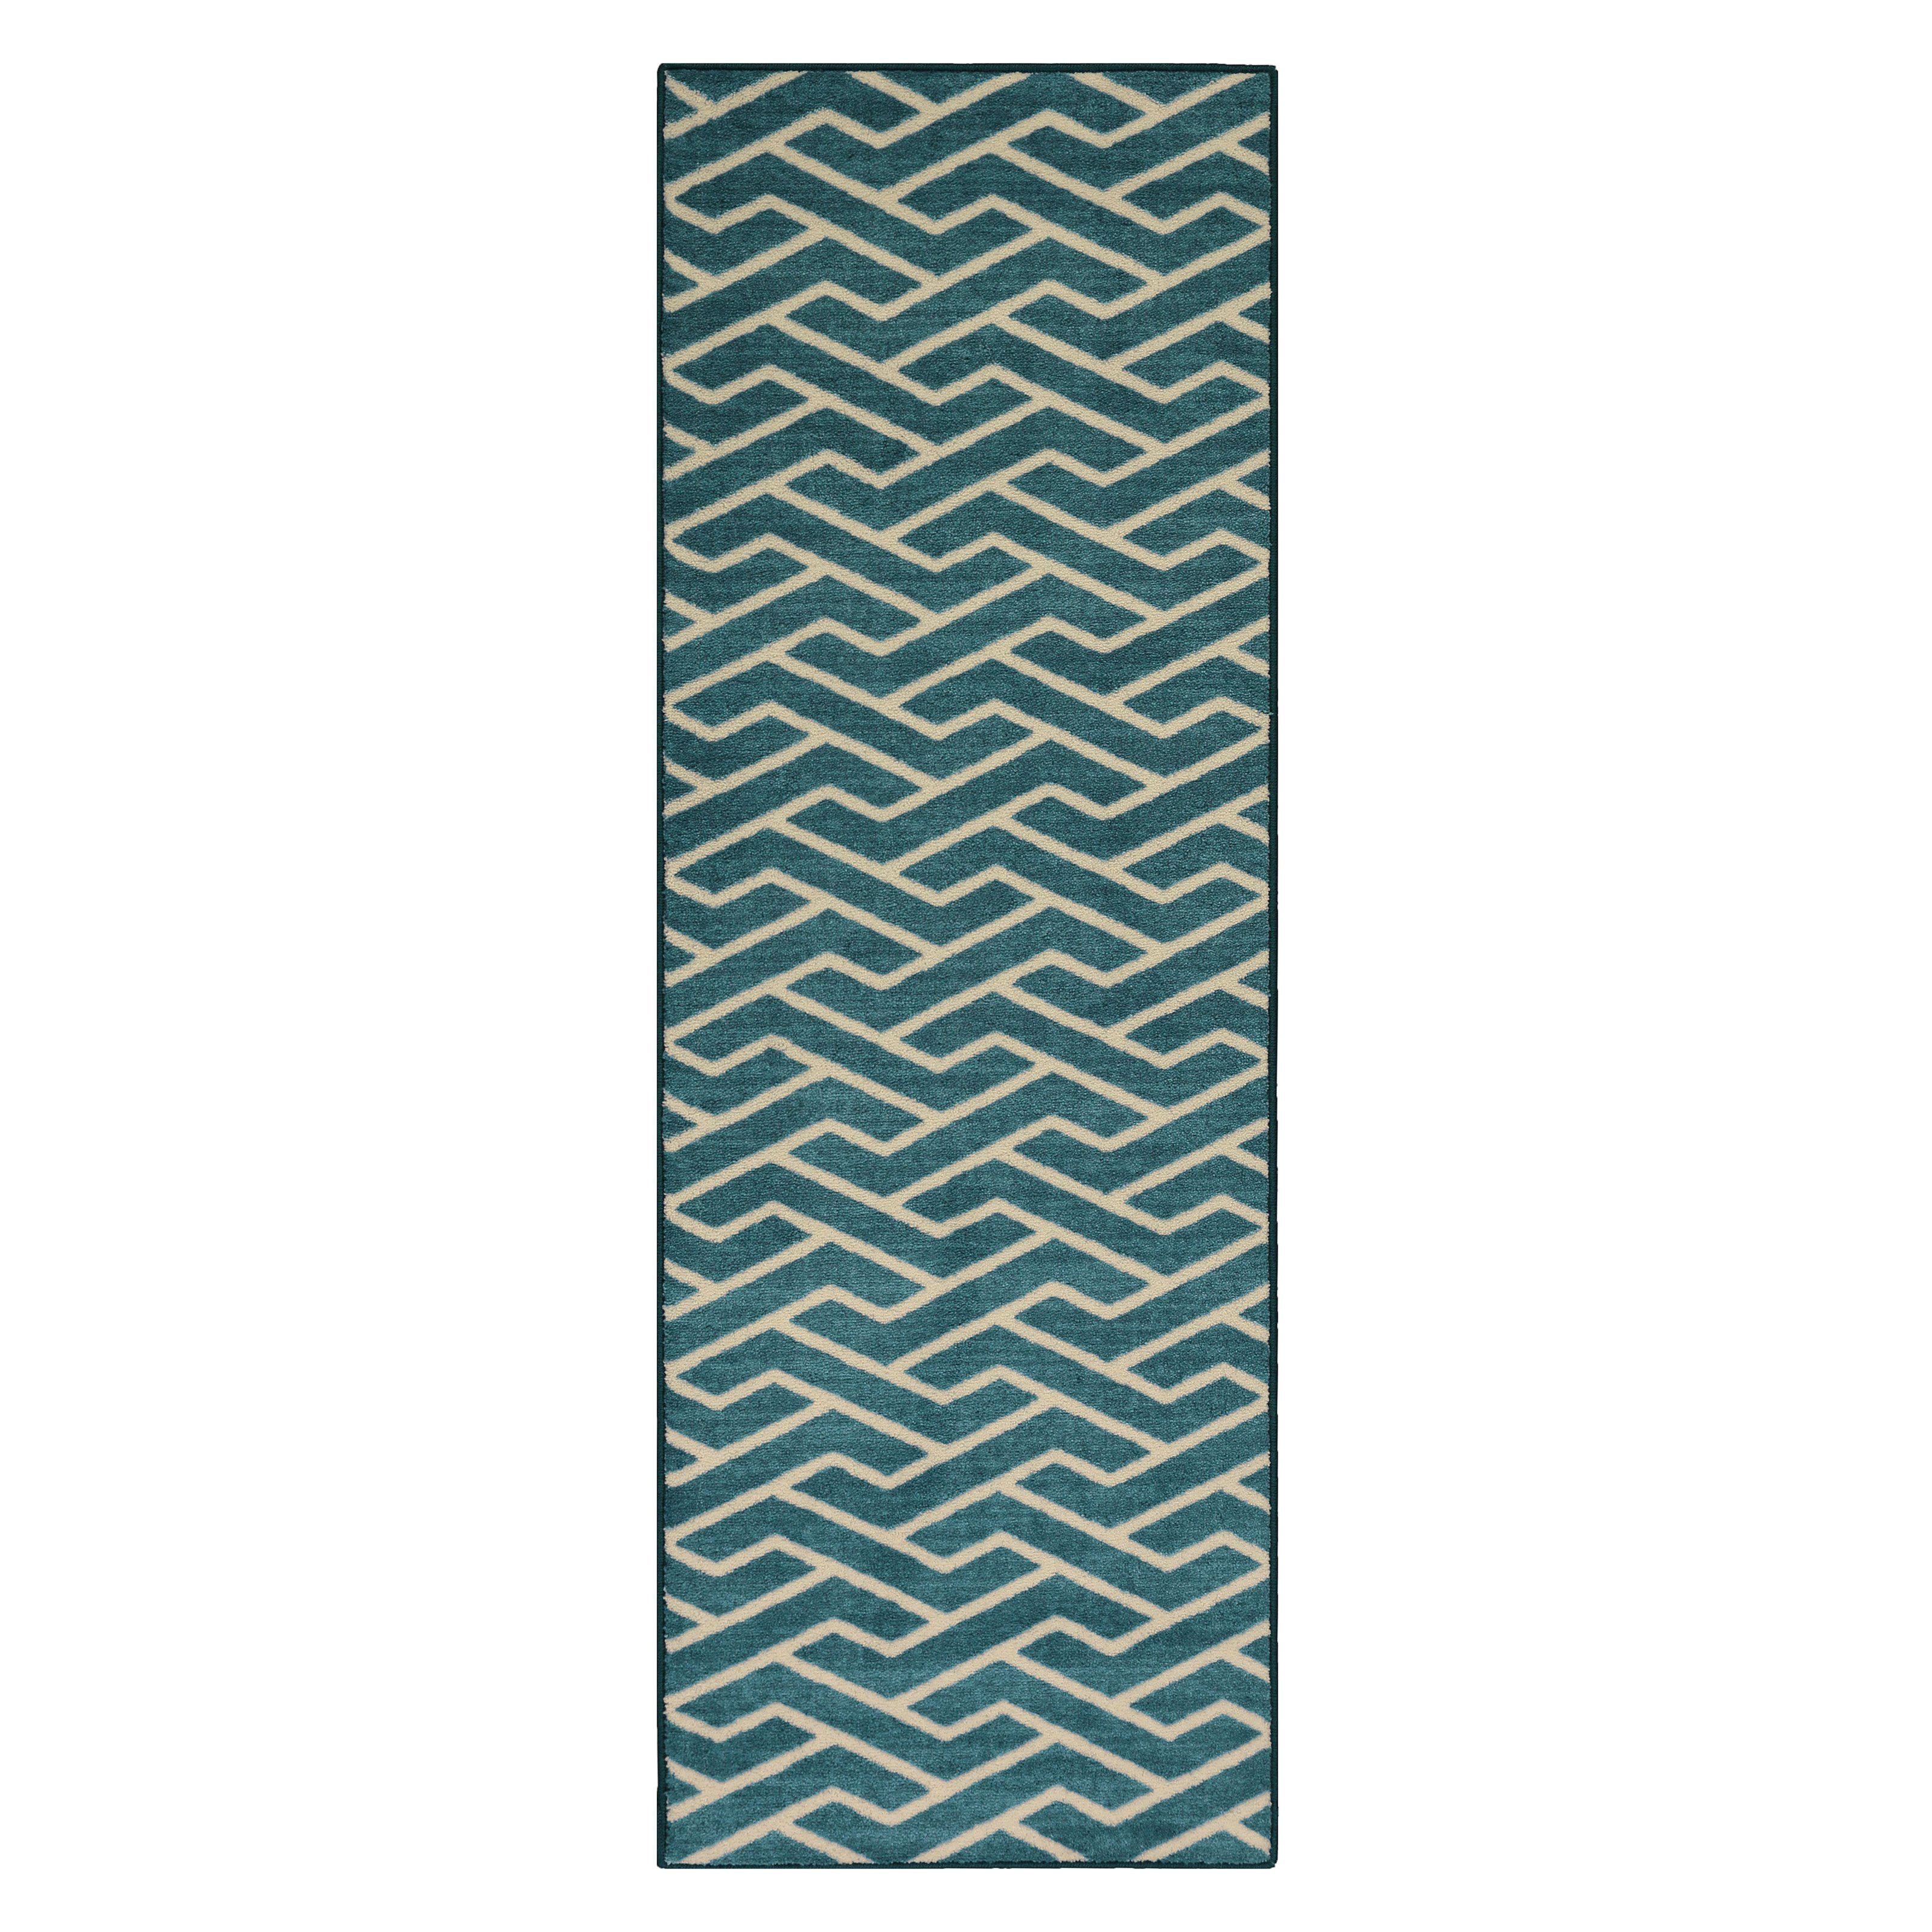 Better Homes and Gardens Rowan Area Rug